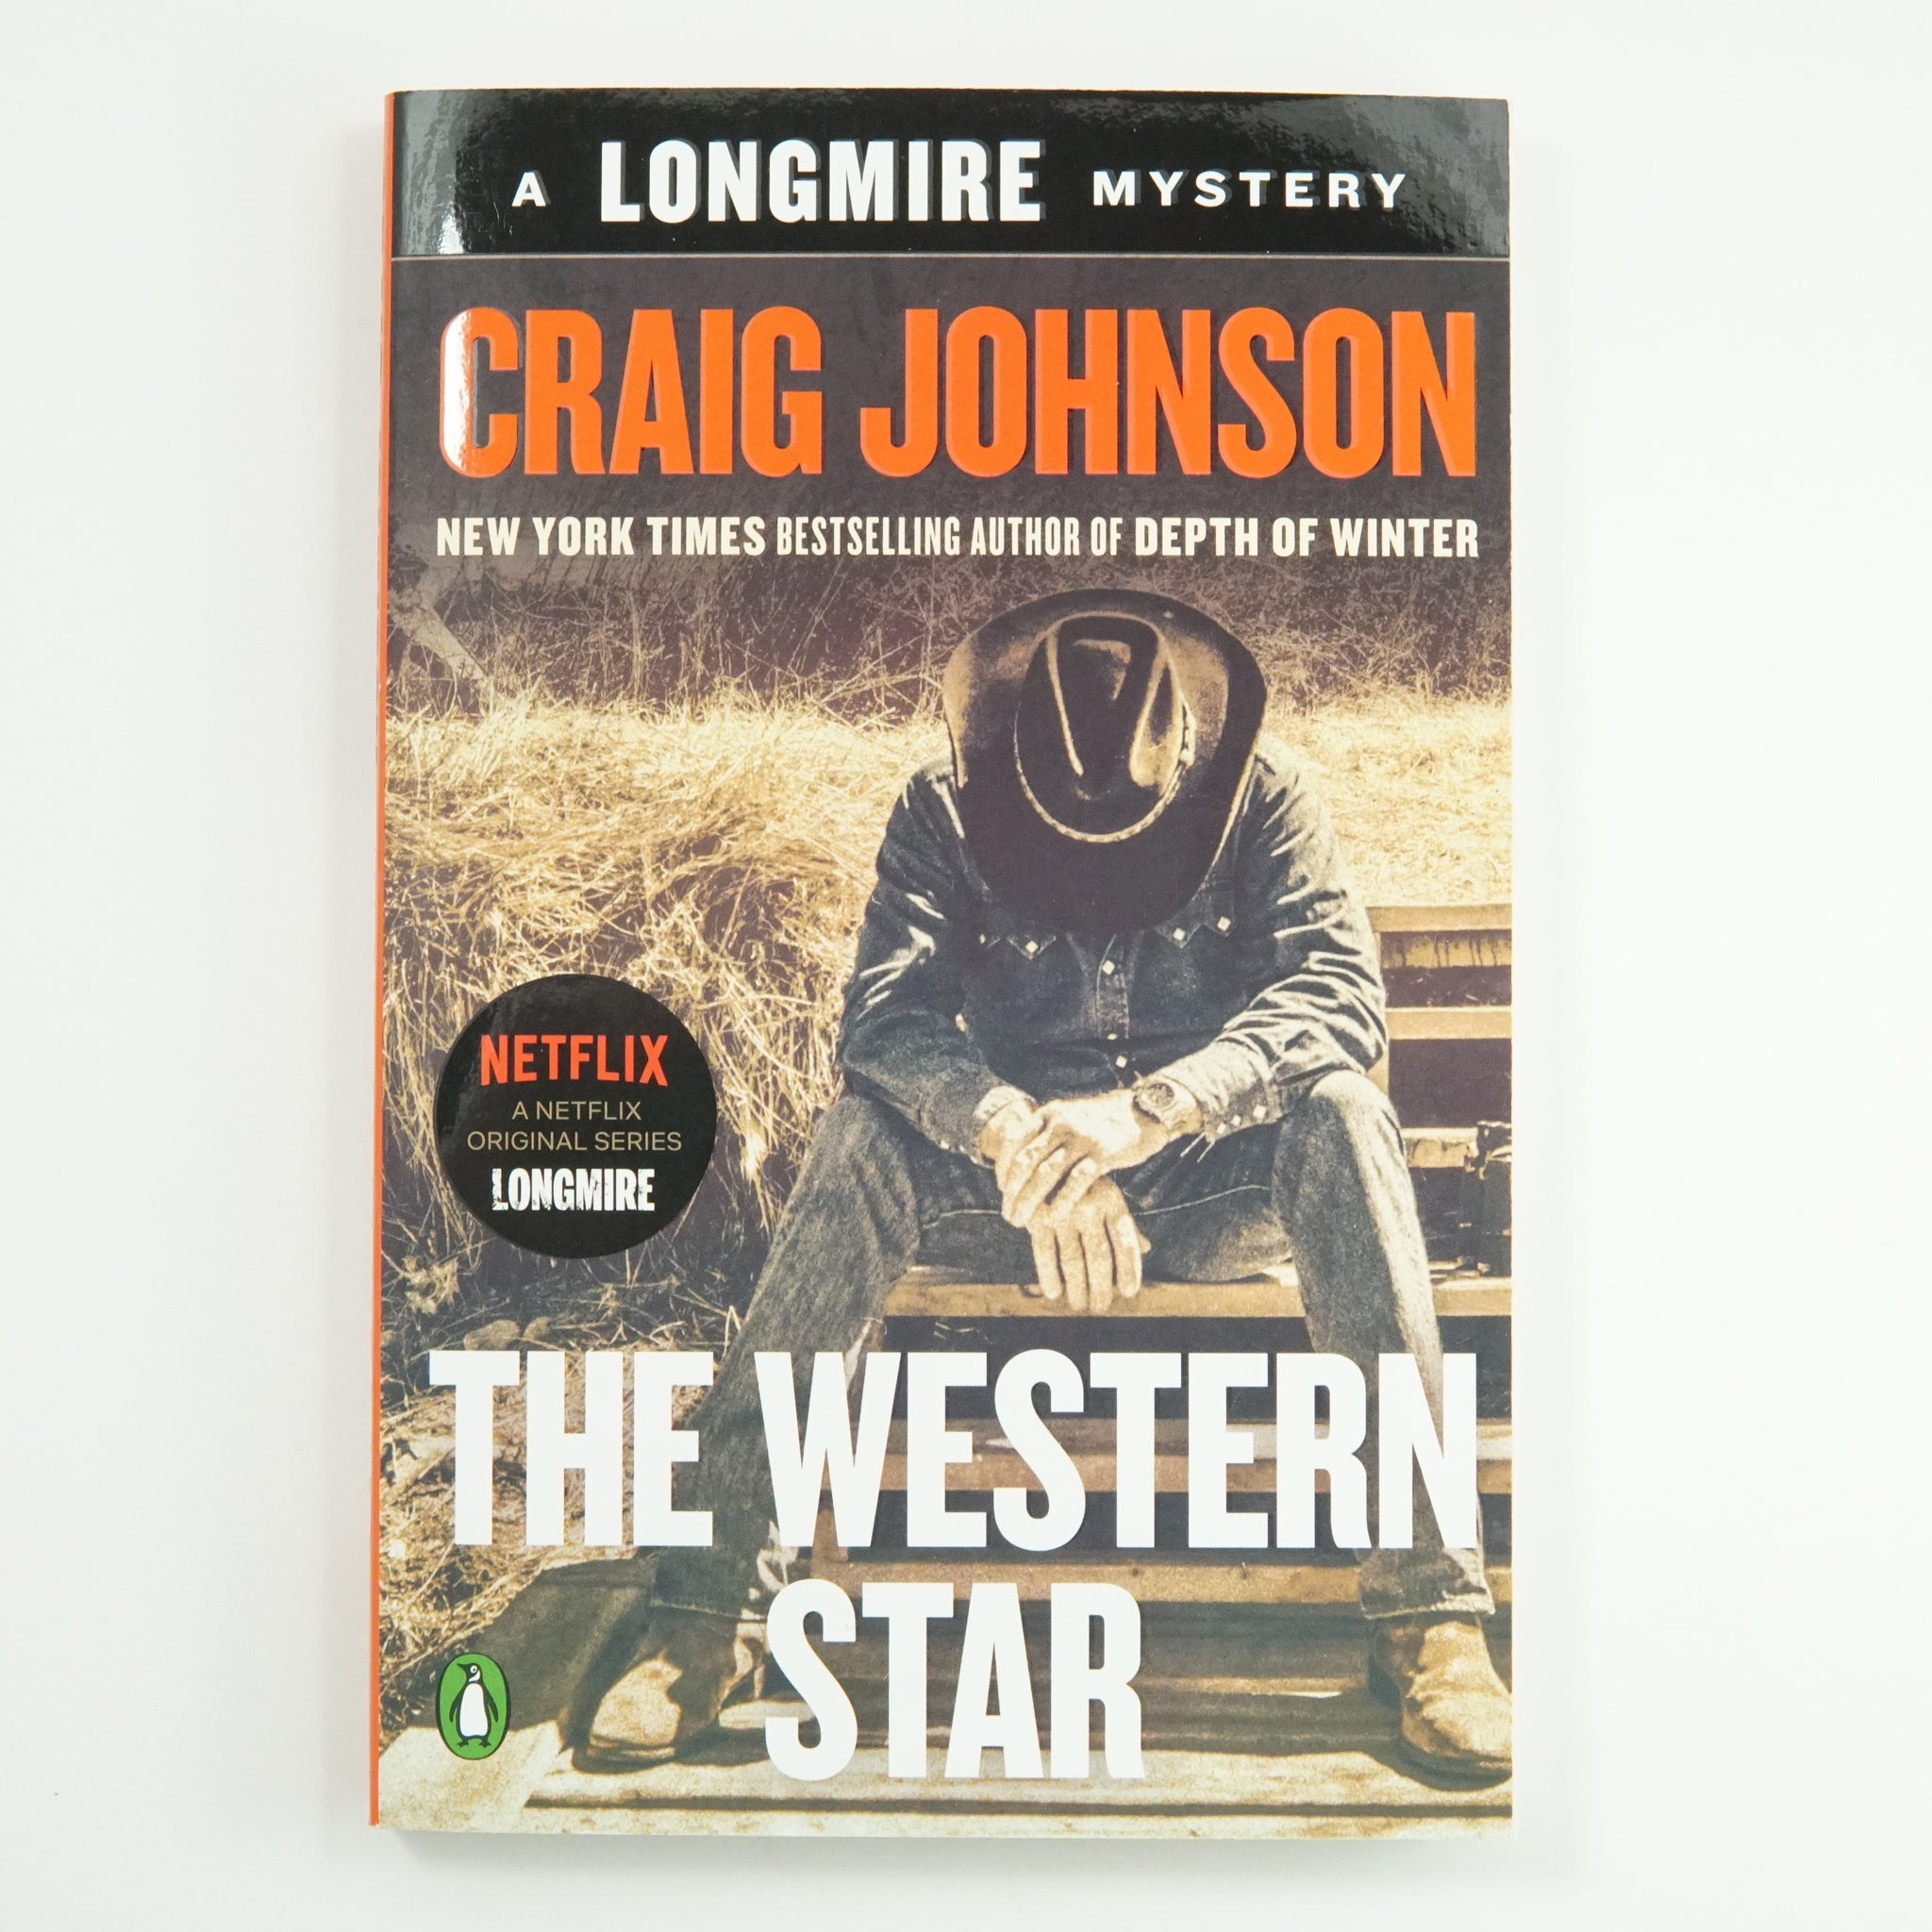 The Western Star by Craig Johnson - 21047124